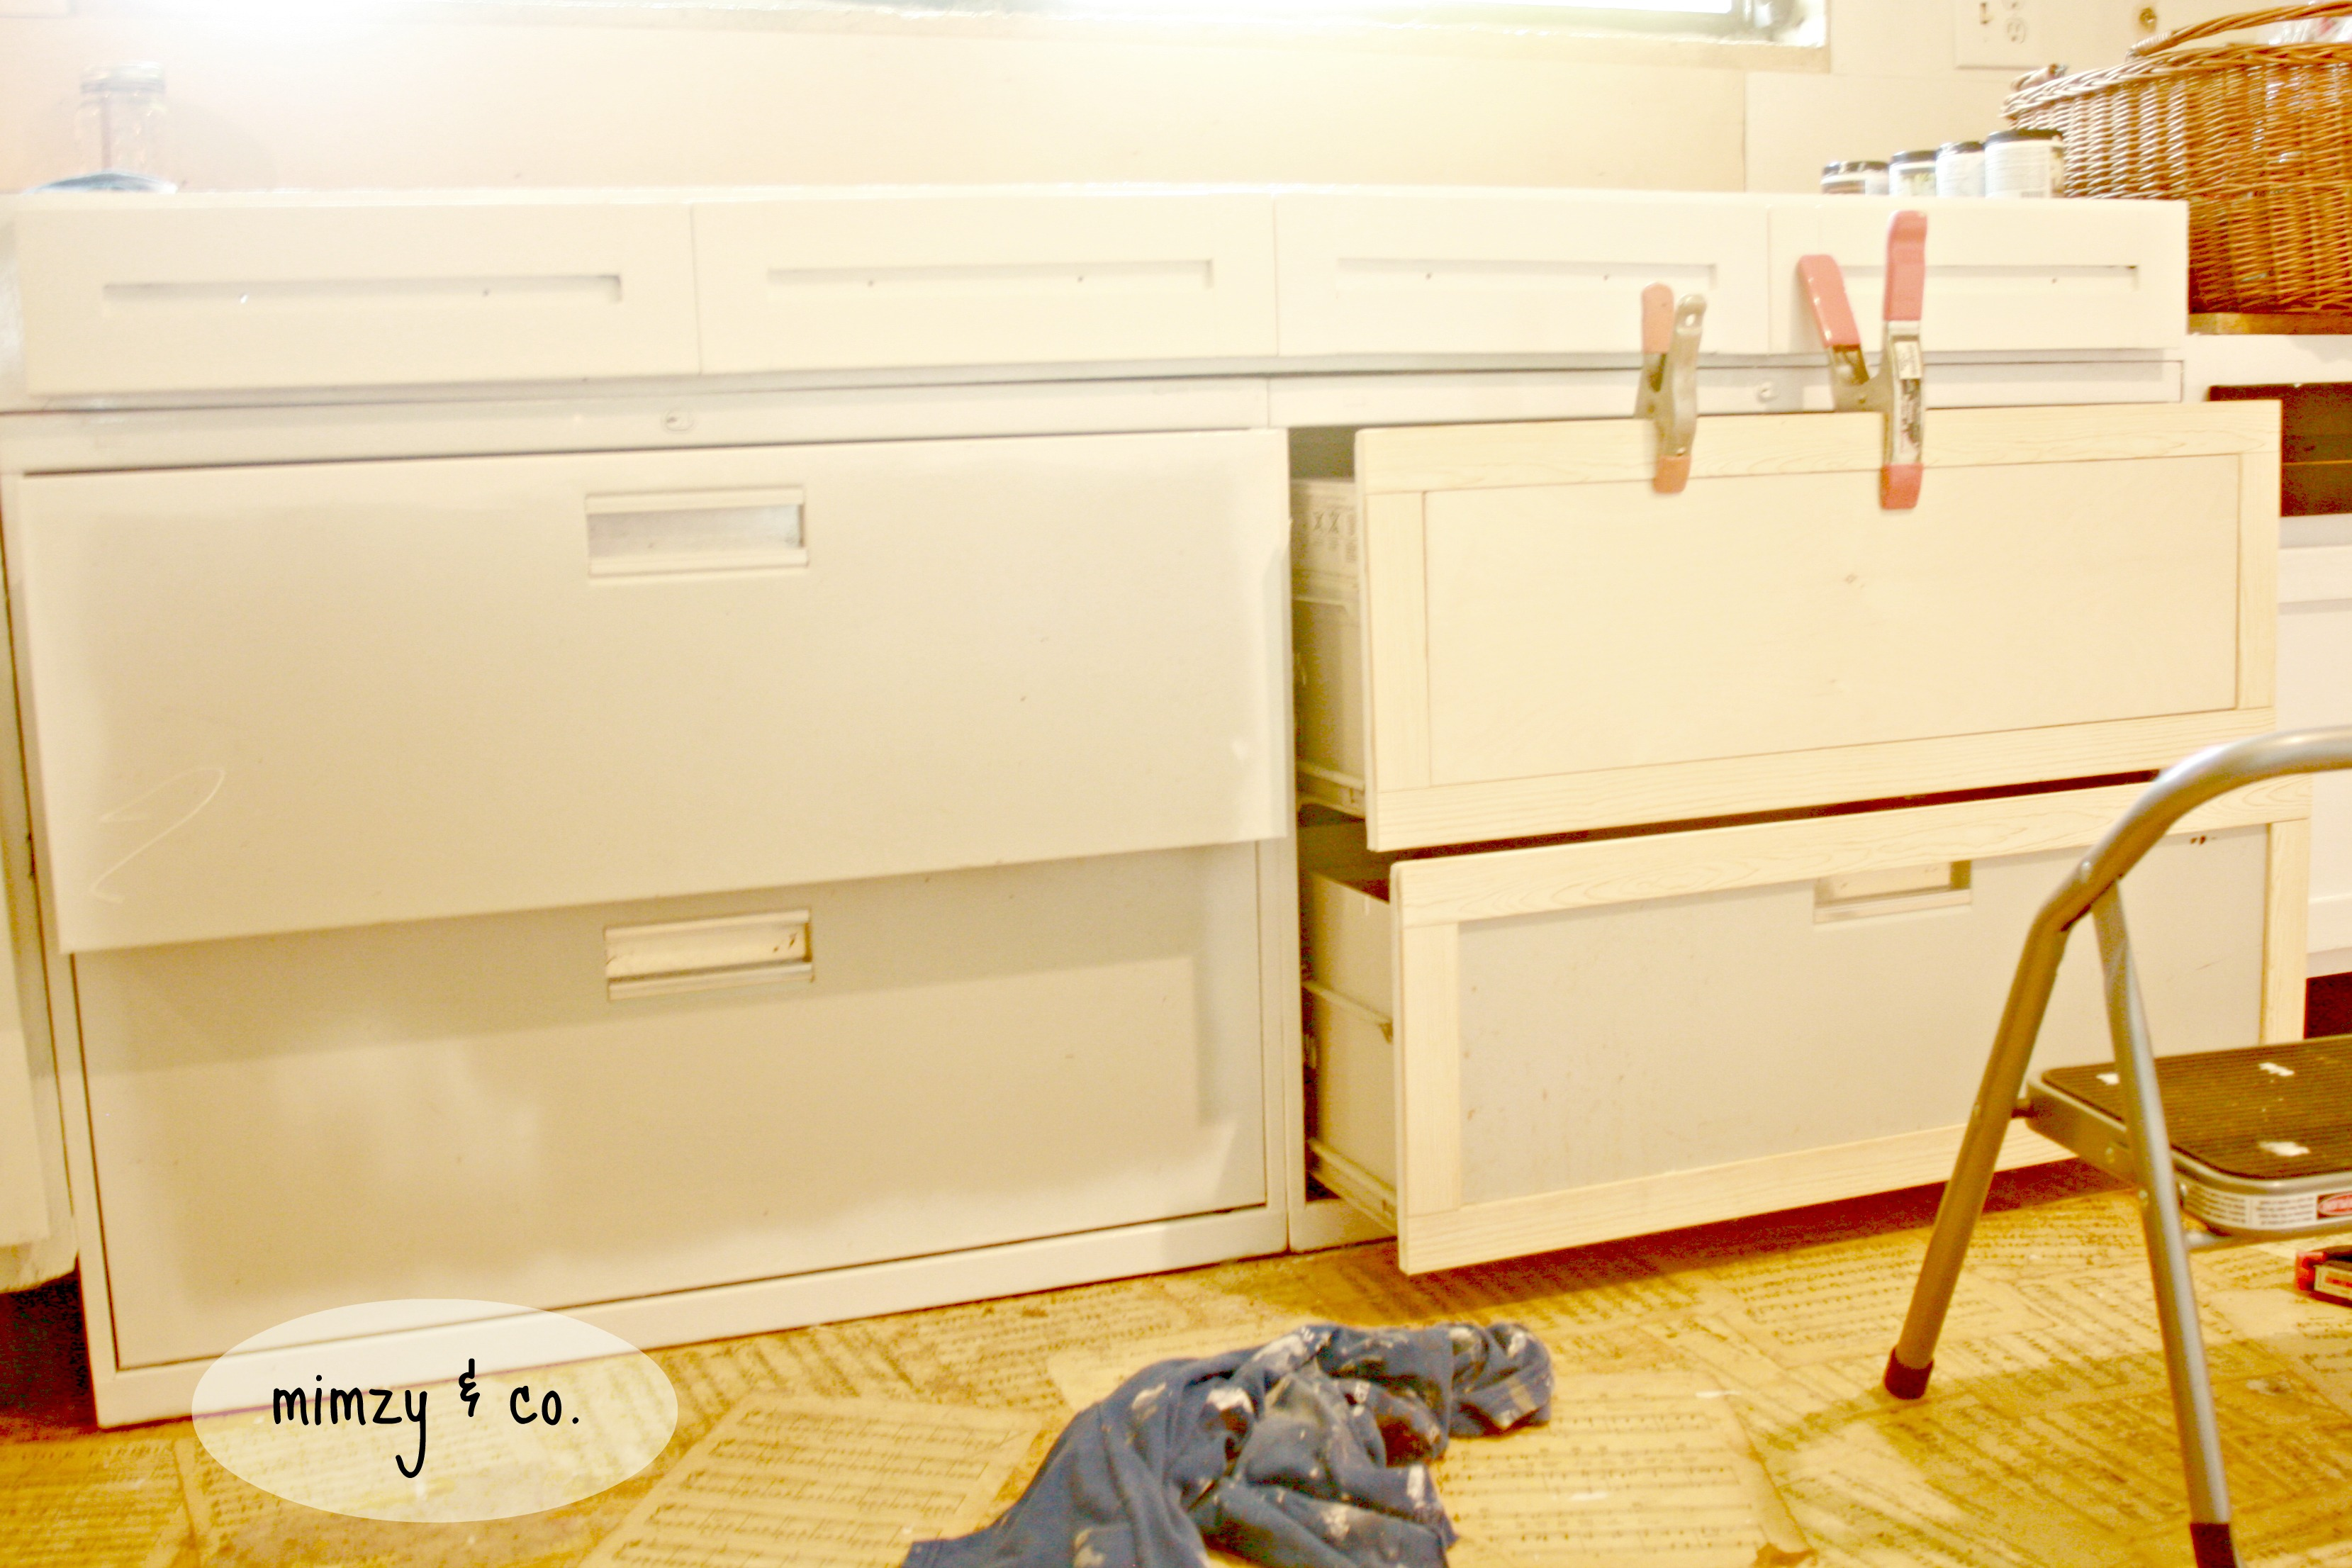 how to turn file cabinets into kitchen cabinets • mimzy & company